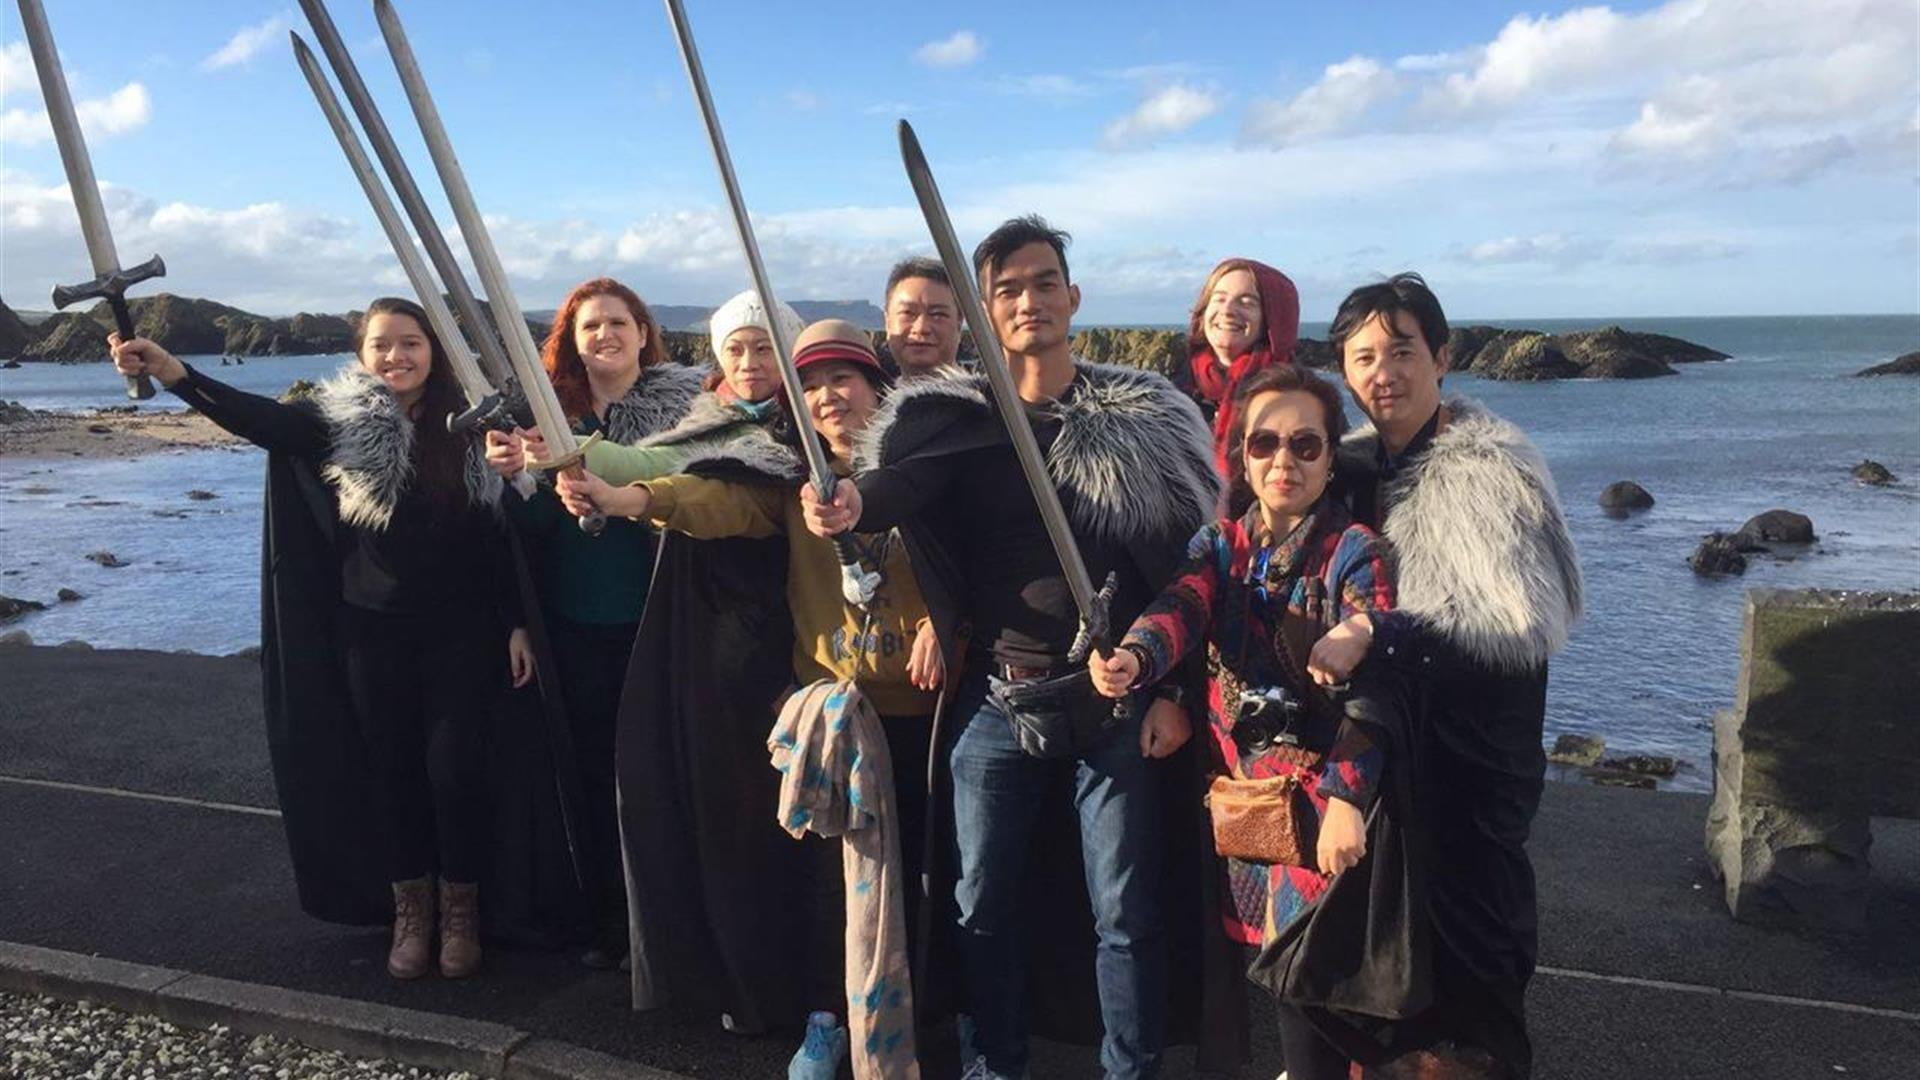 Stones and Thrones Game of Thrones® Location Tour